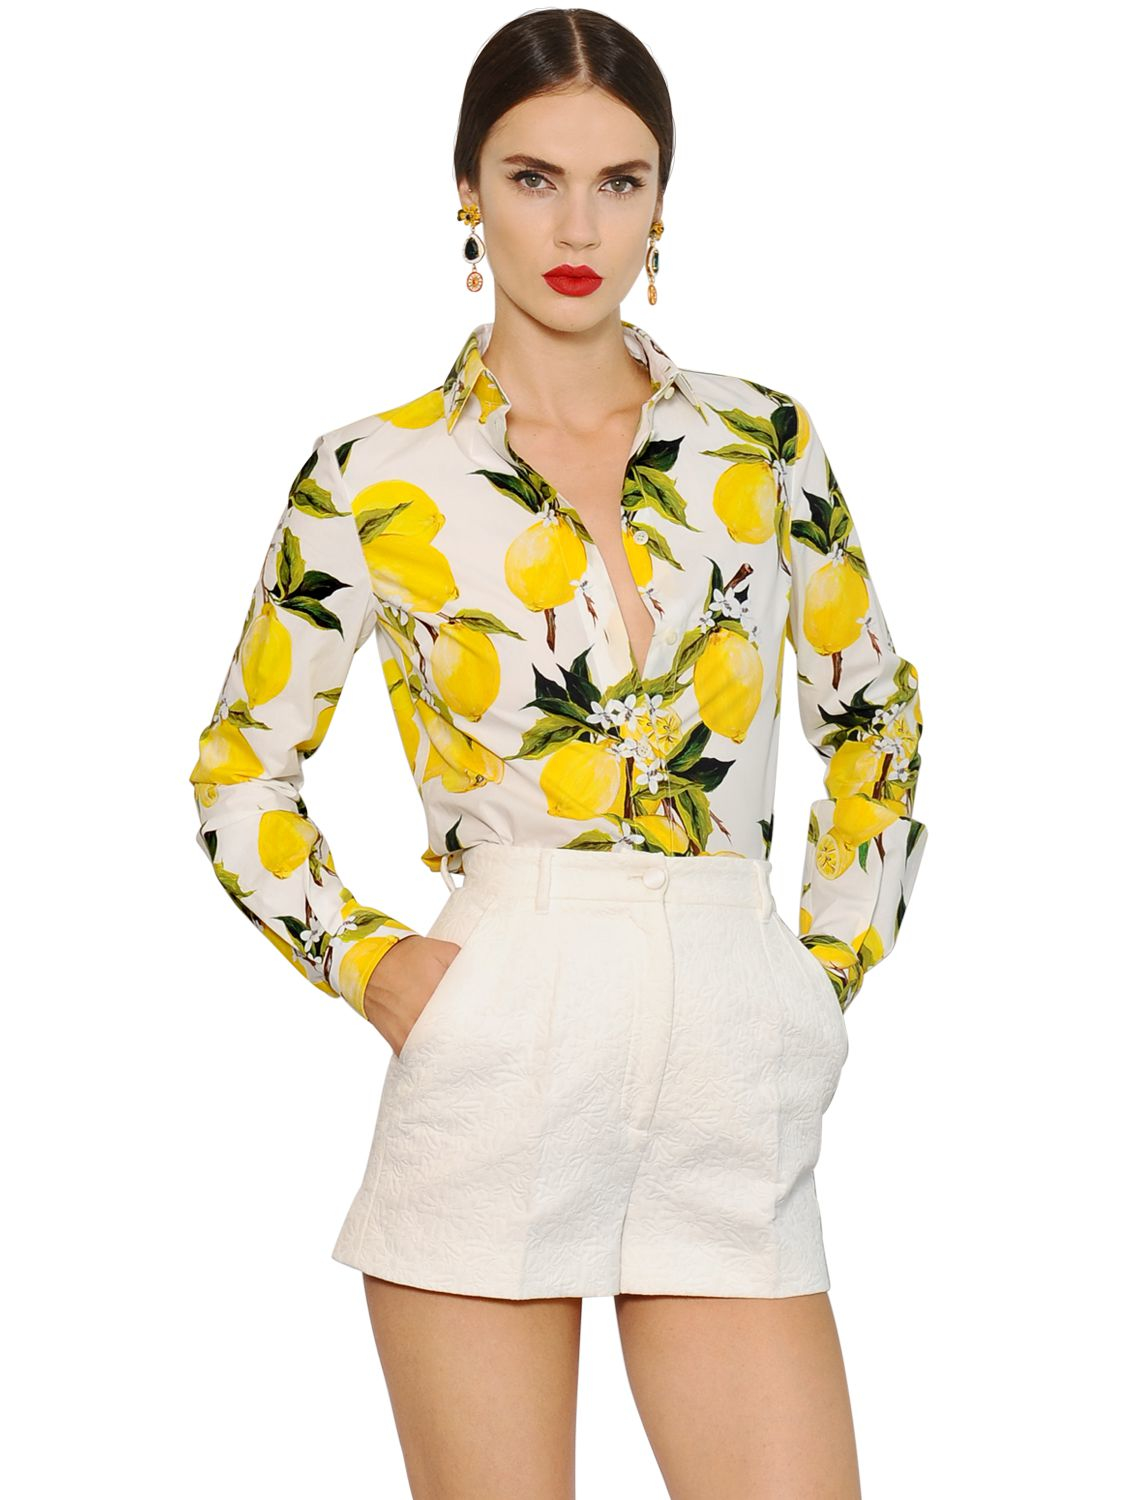 Dolce   Gabbana Lemon Printed Cotton Poplin Shirt in Yellow - Lyst 7fab1d6735fce